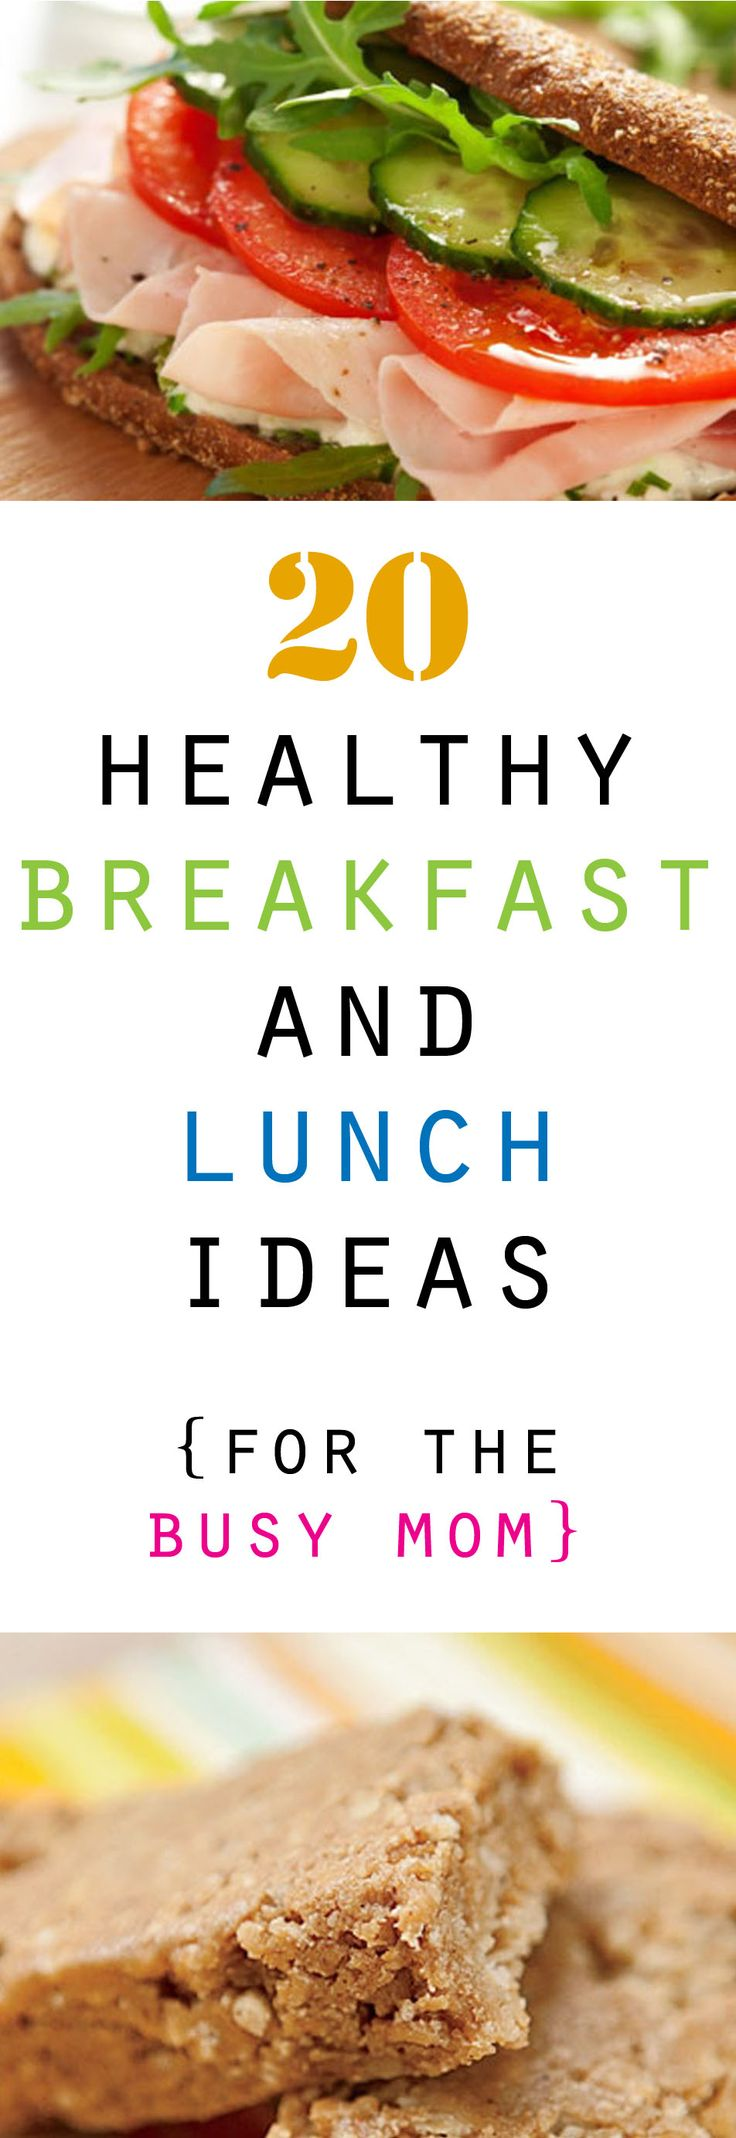 20 Healthy Breakfast and Lunch Ideas--these are great for busy people like me!